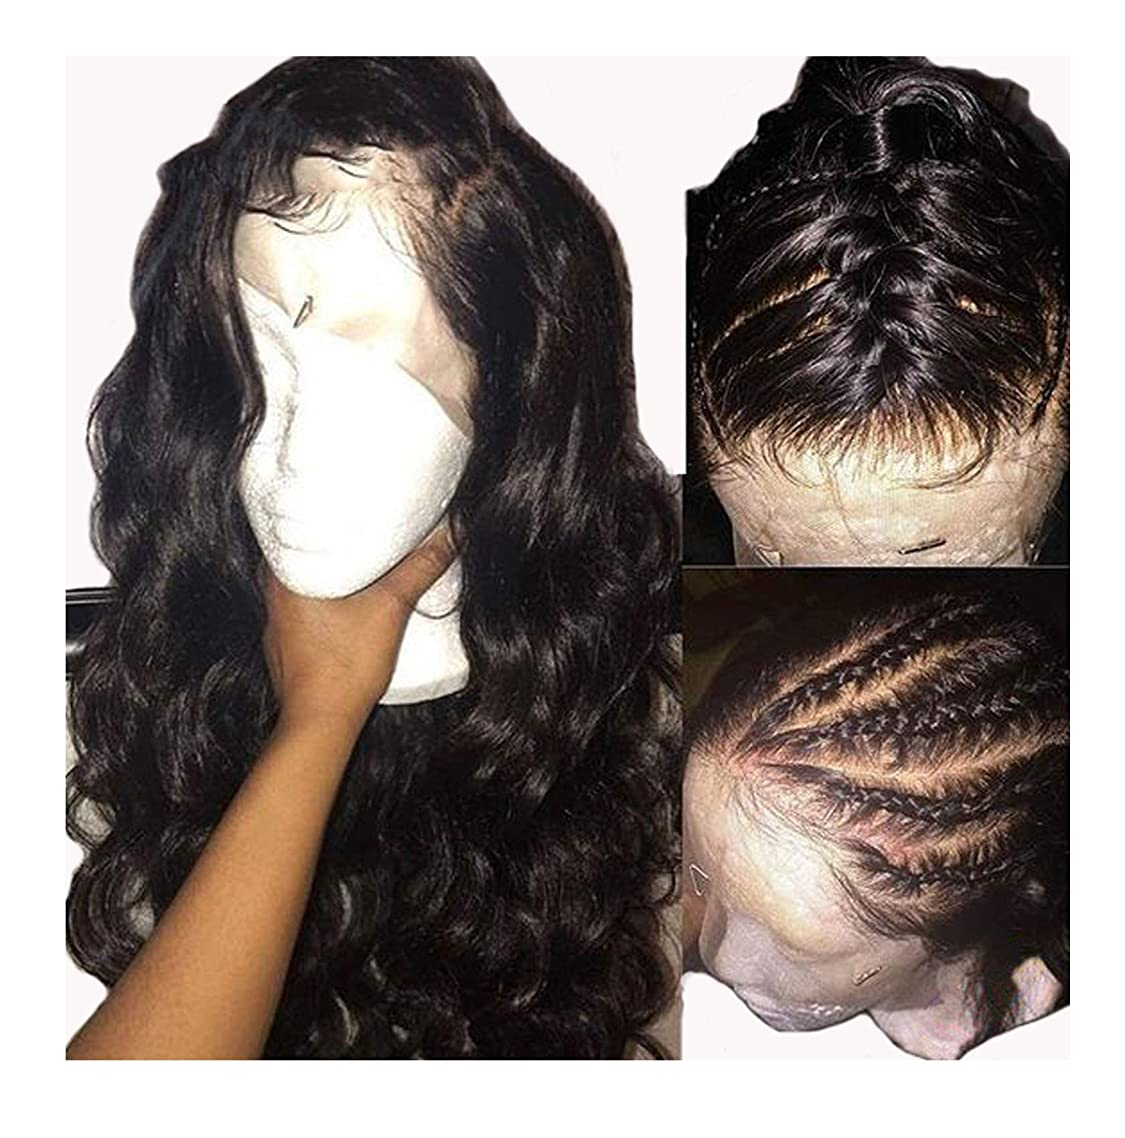 natural Body Wave Lace Front Human Hair Wigs For Black Women Natural/#1 Jet Black Color Peruvian Remy Lace Wig,#1,24inches